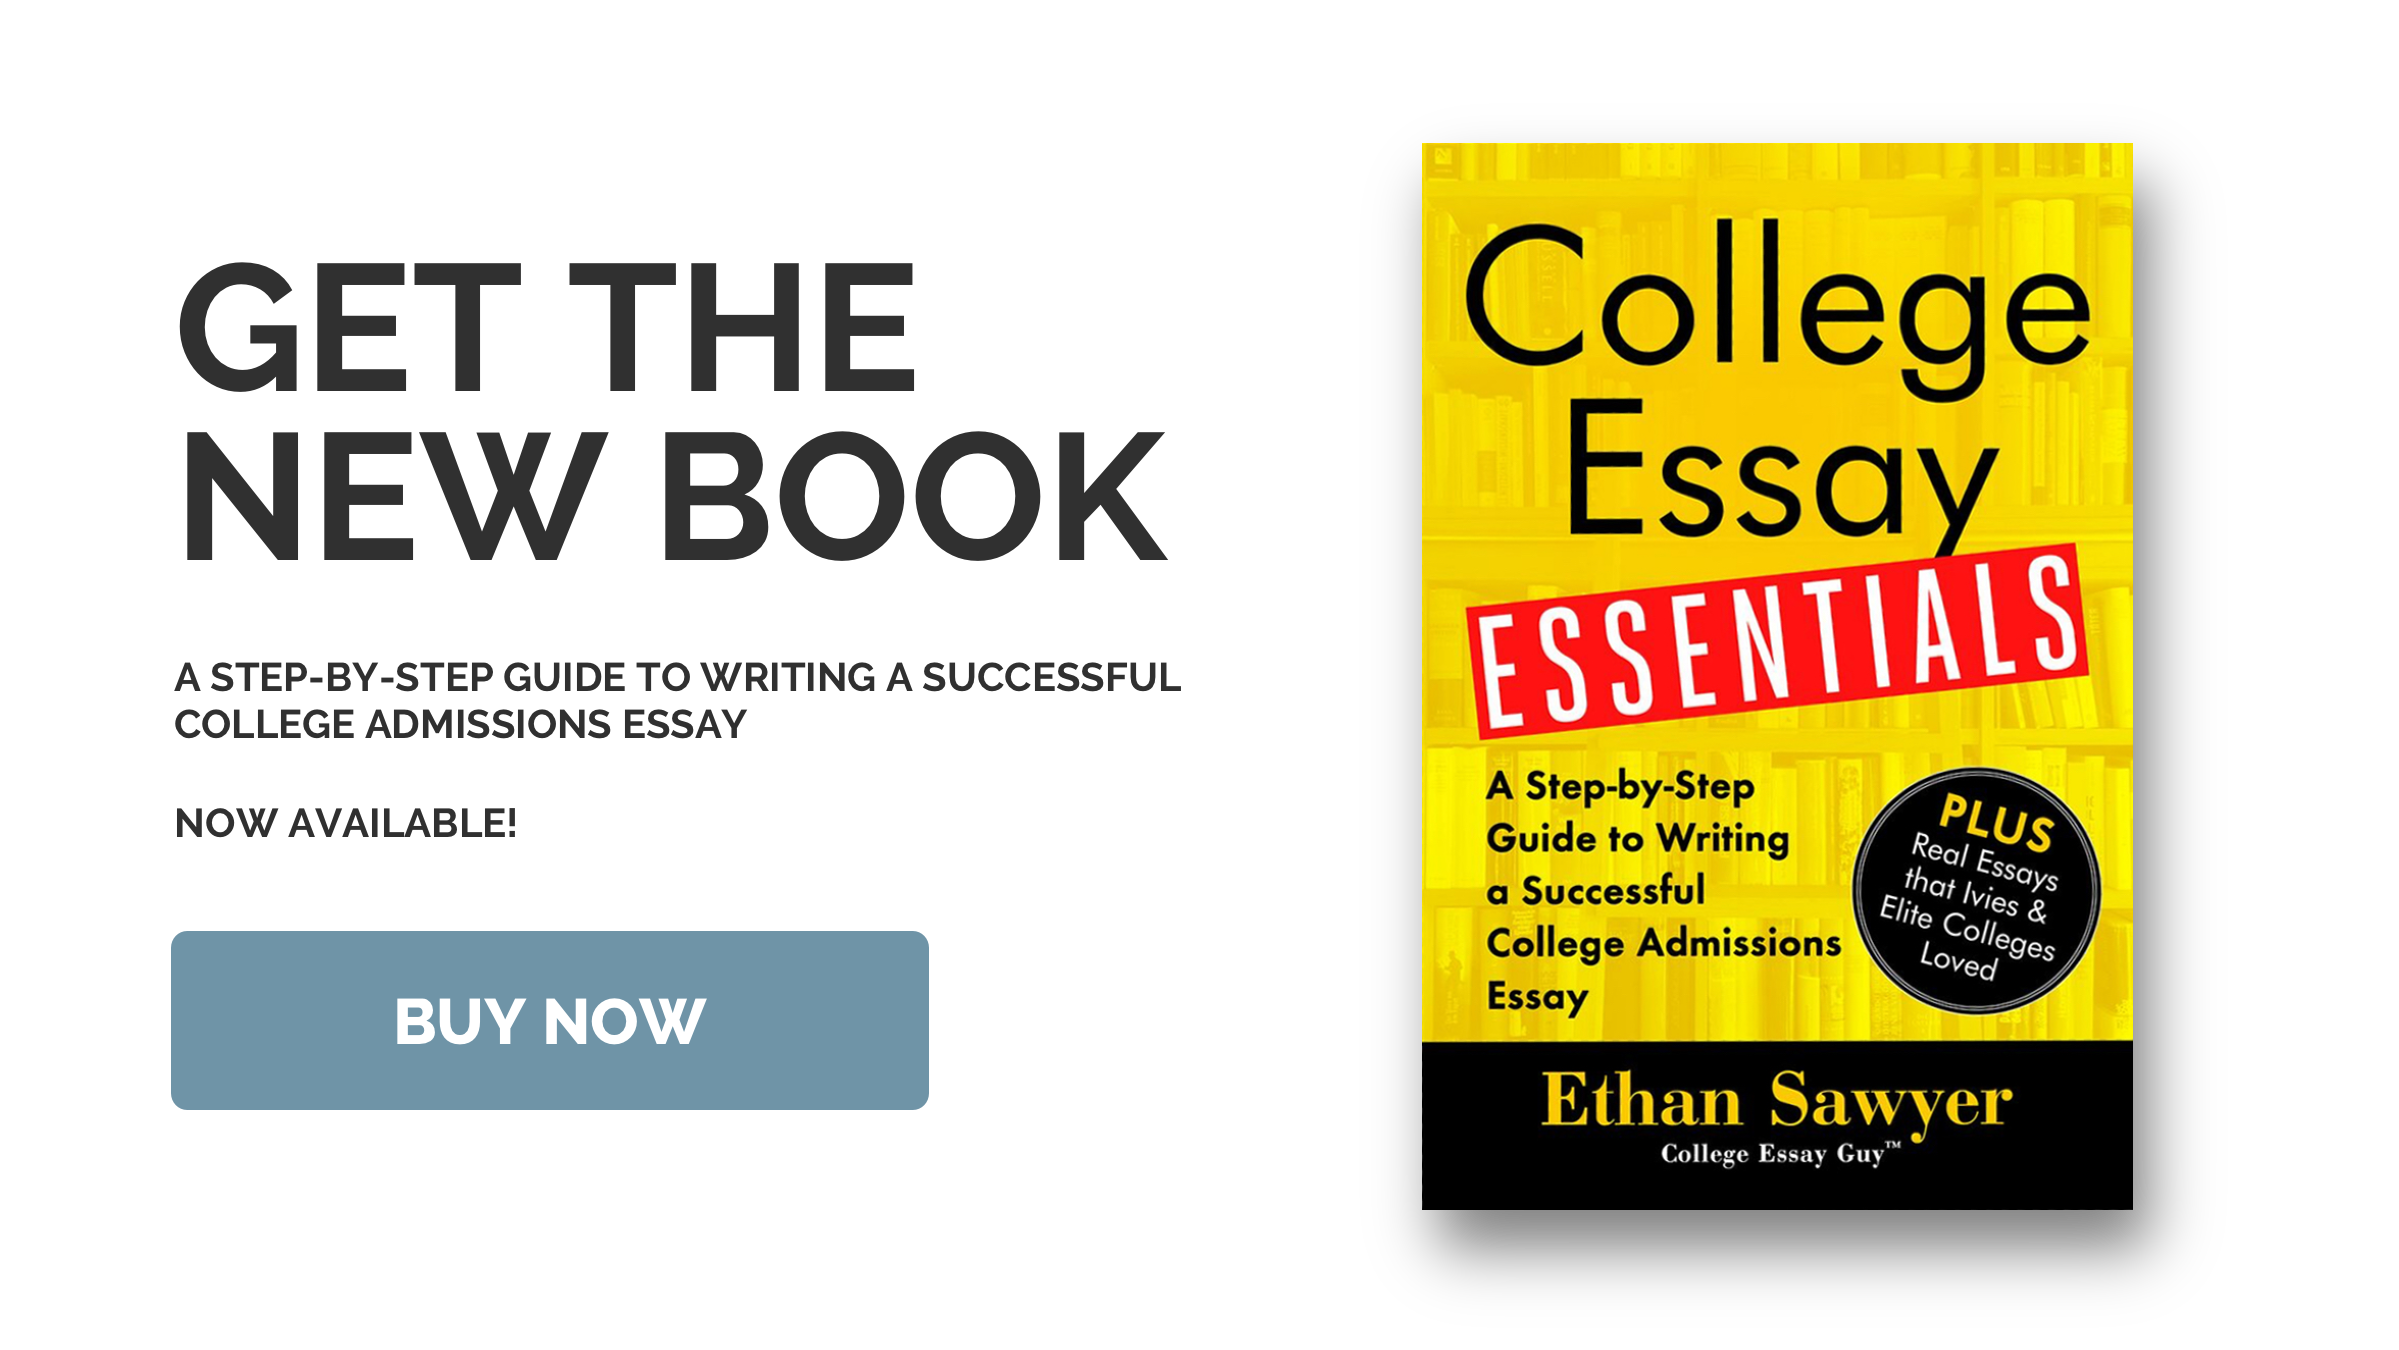 Want All My College Essay Tip In One Easy To Acces Place Get Book Essential Col Admission Writing I Need Help With